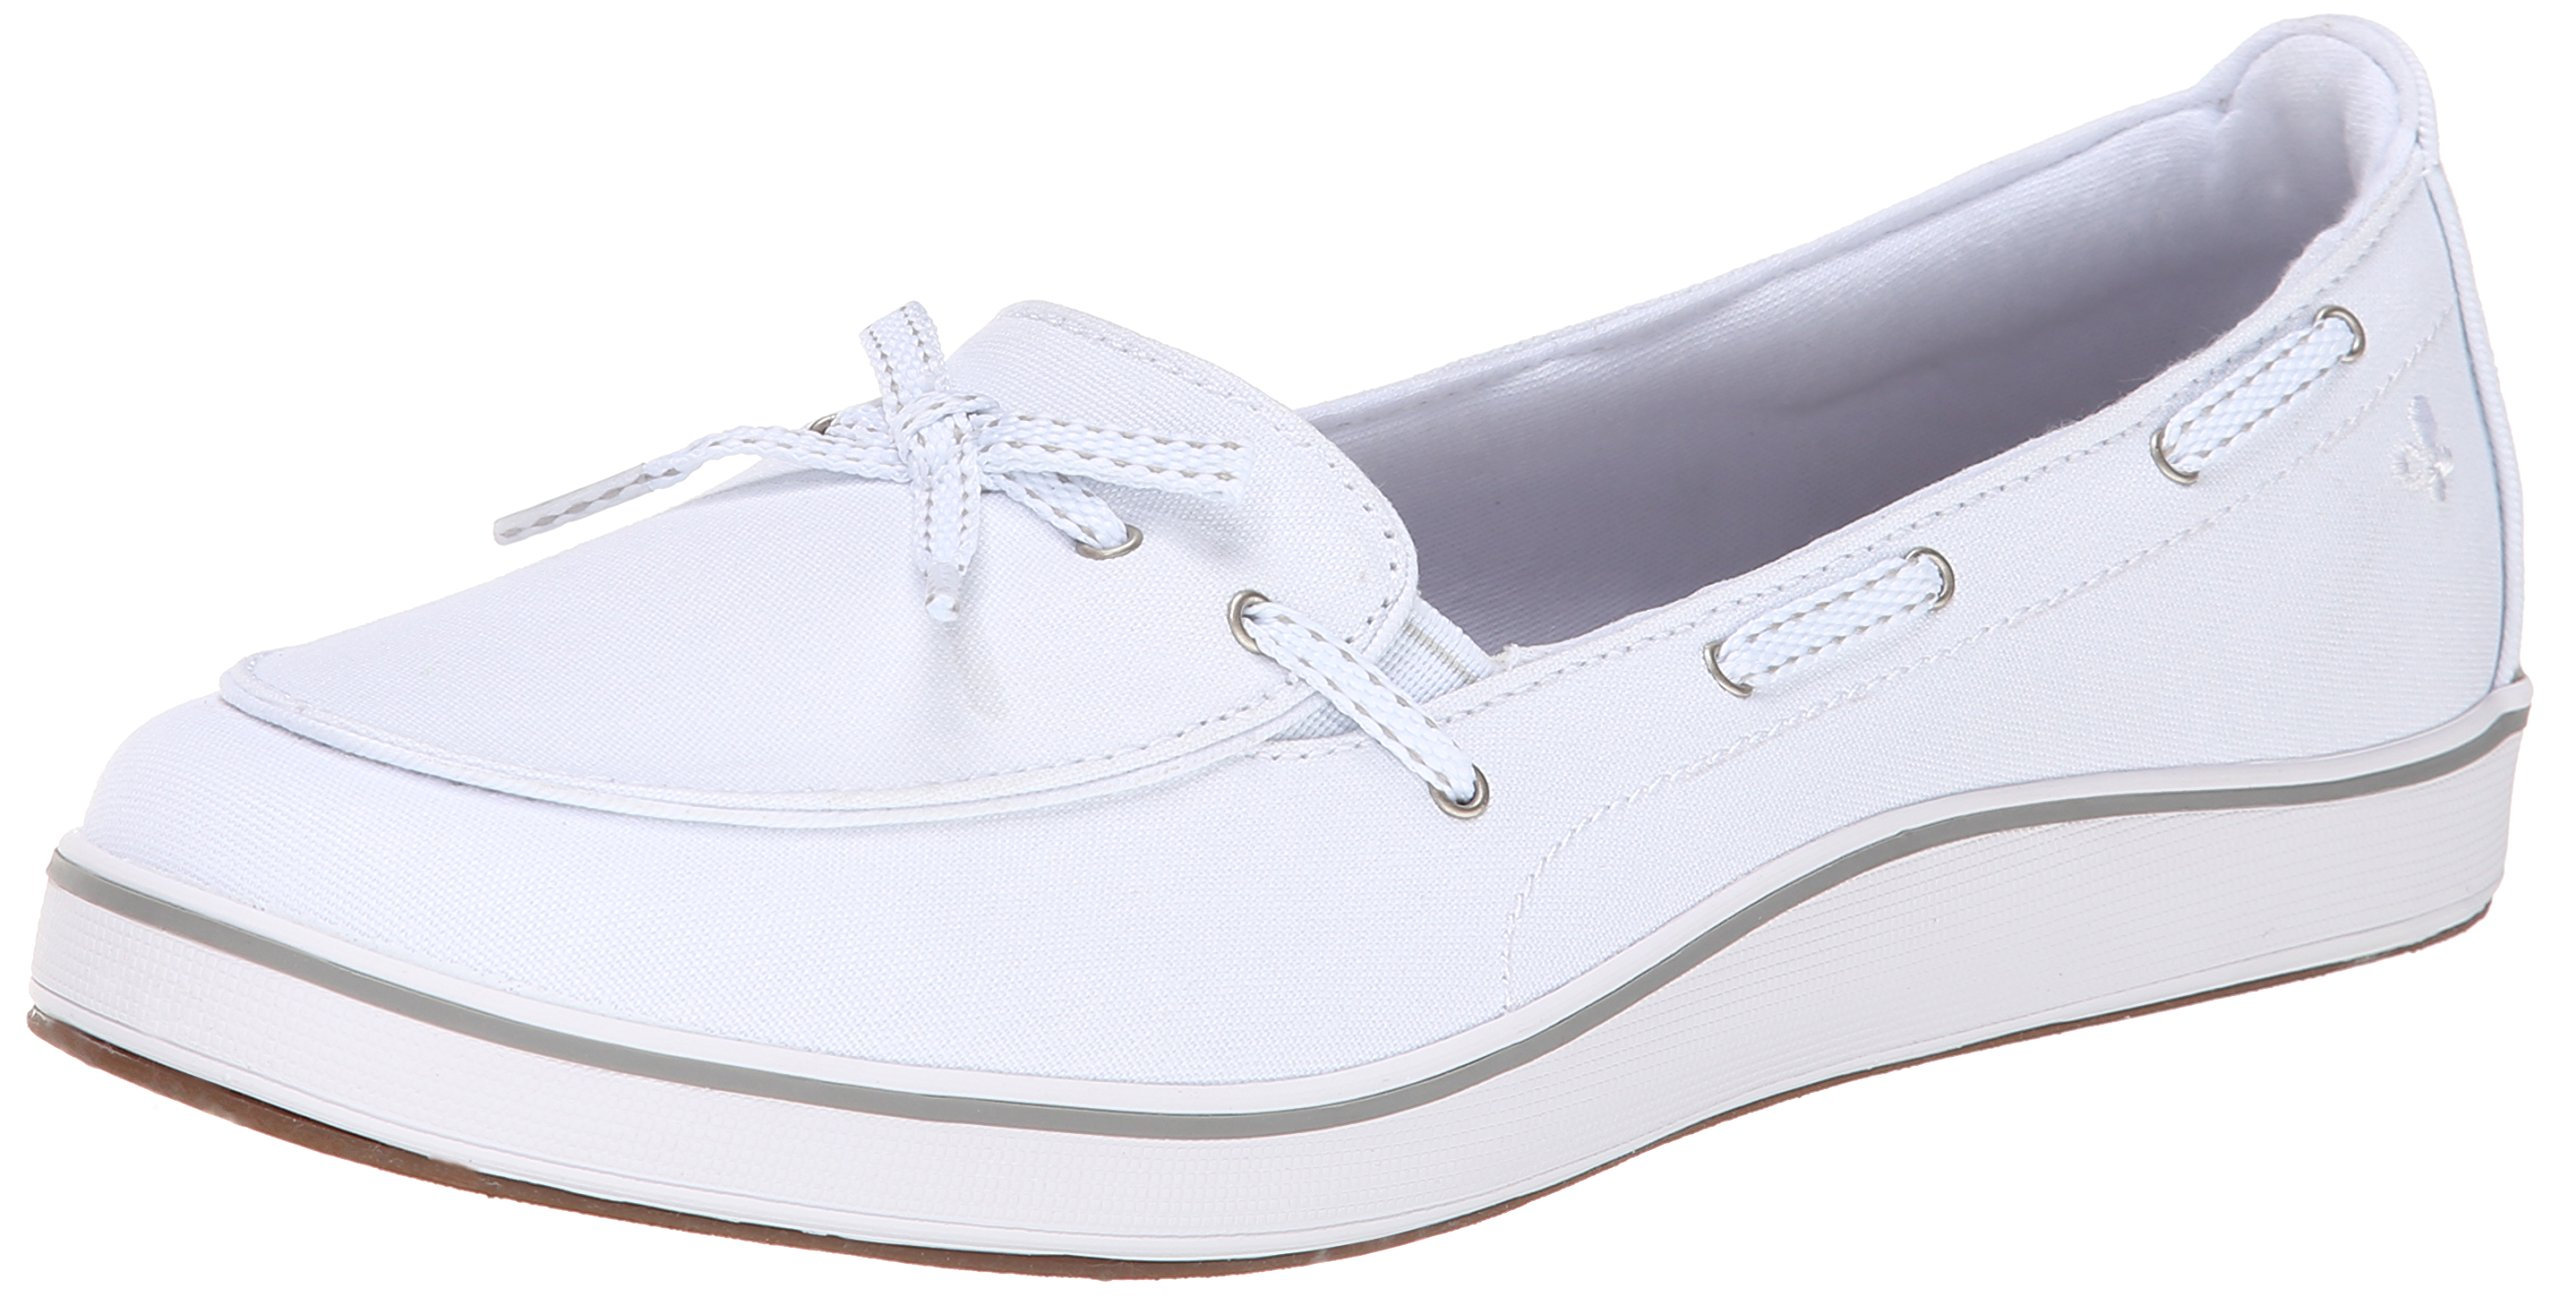 Grasshoppers Women's Windham Slip-On, White, 8 W US by Grasshoppers